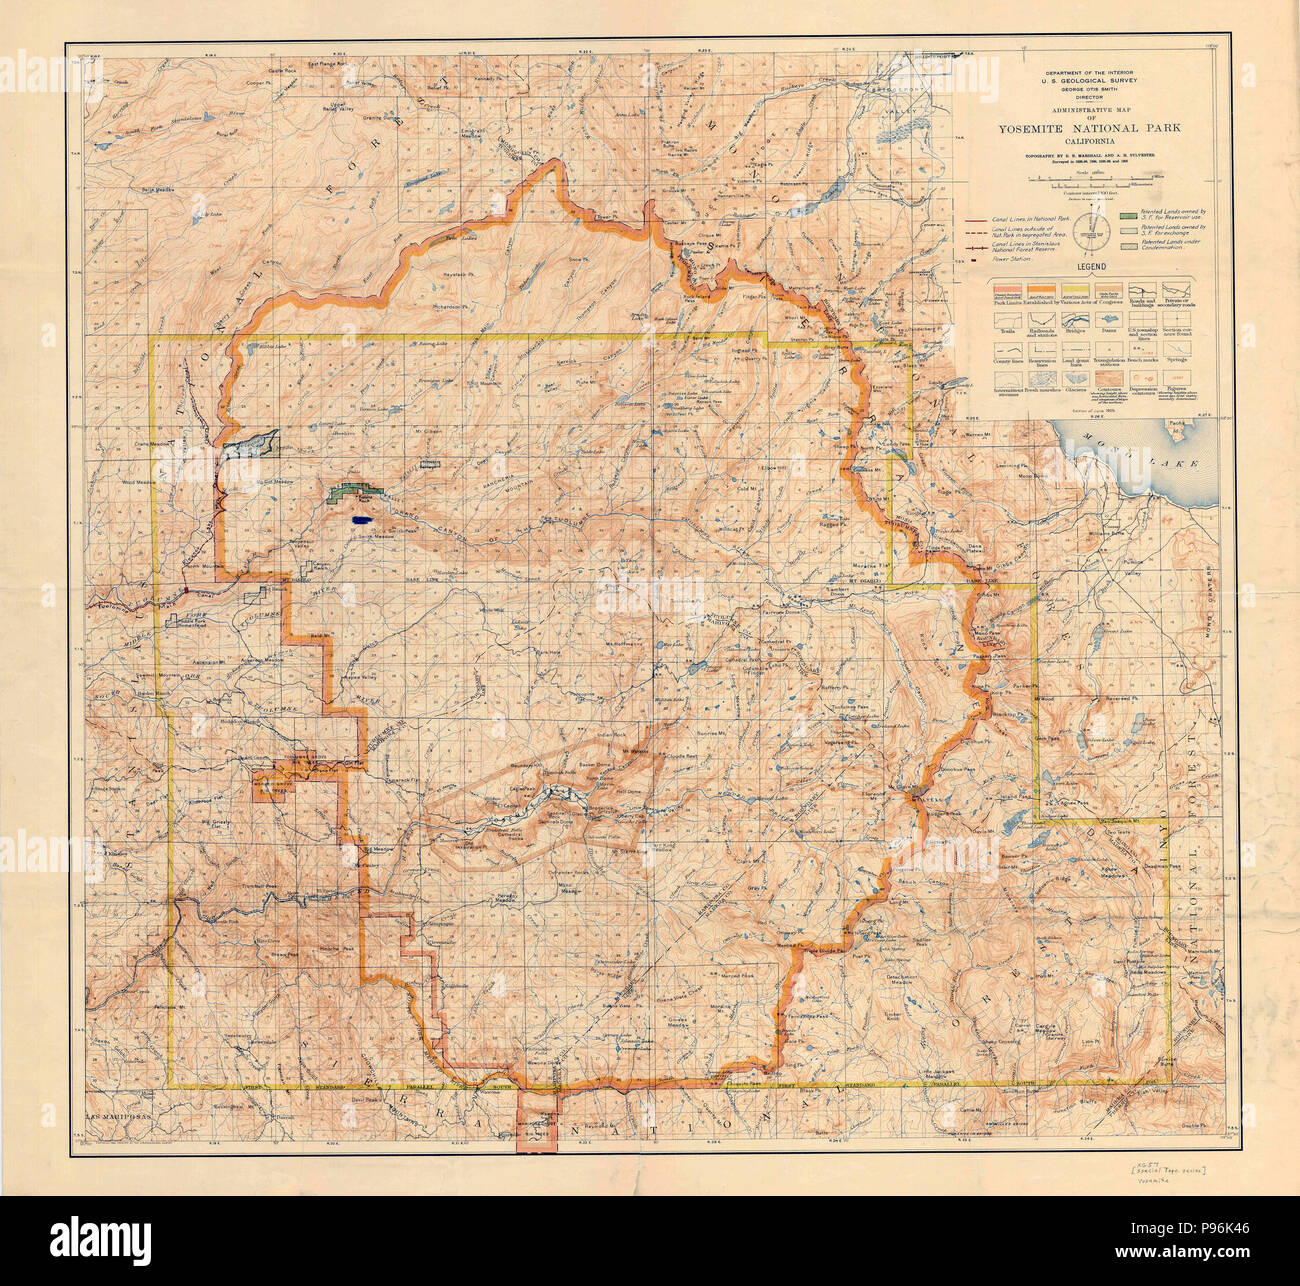 Topographic Map Of Yosemite National Park And Vicinity 1909 Stock